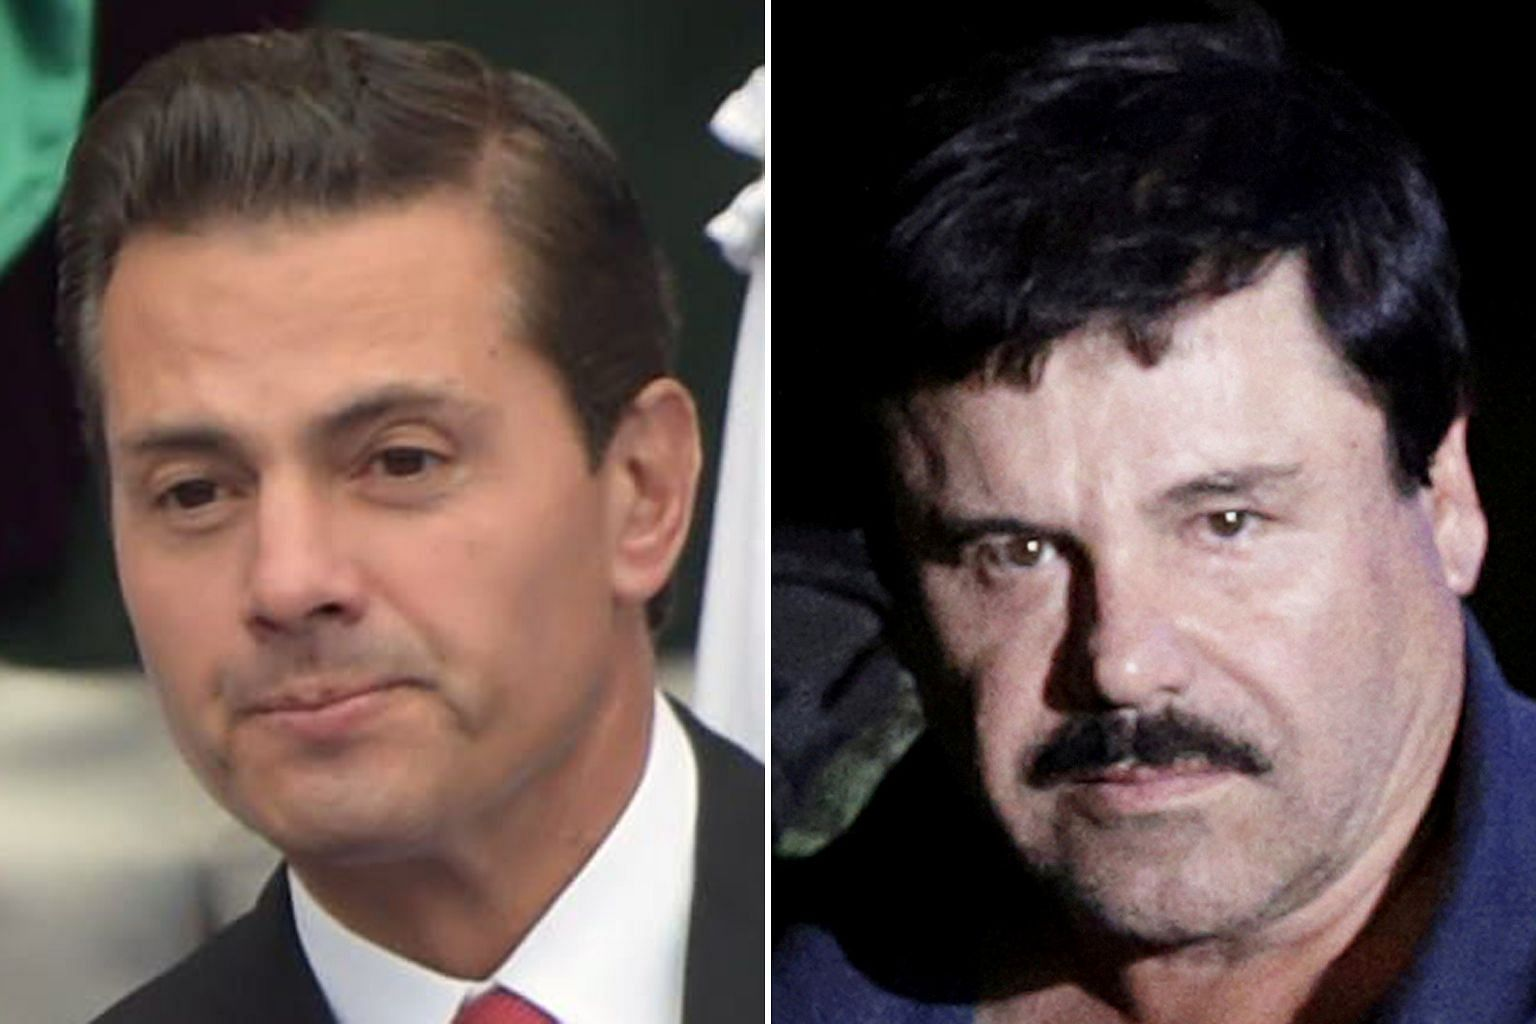 Former Mexican president Enrique Pena Nieto (left) allegedly reached out to Joaquin Guzman Loera in 2012.